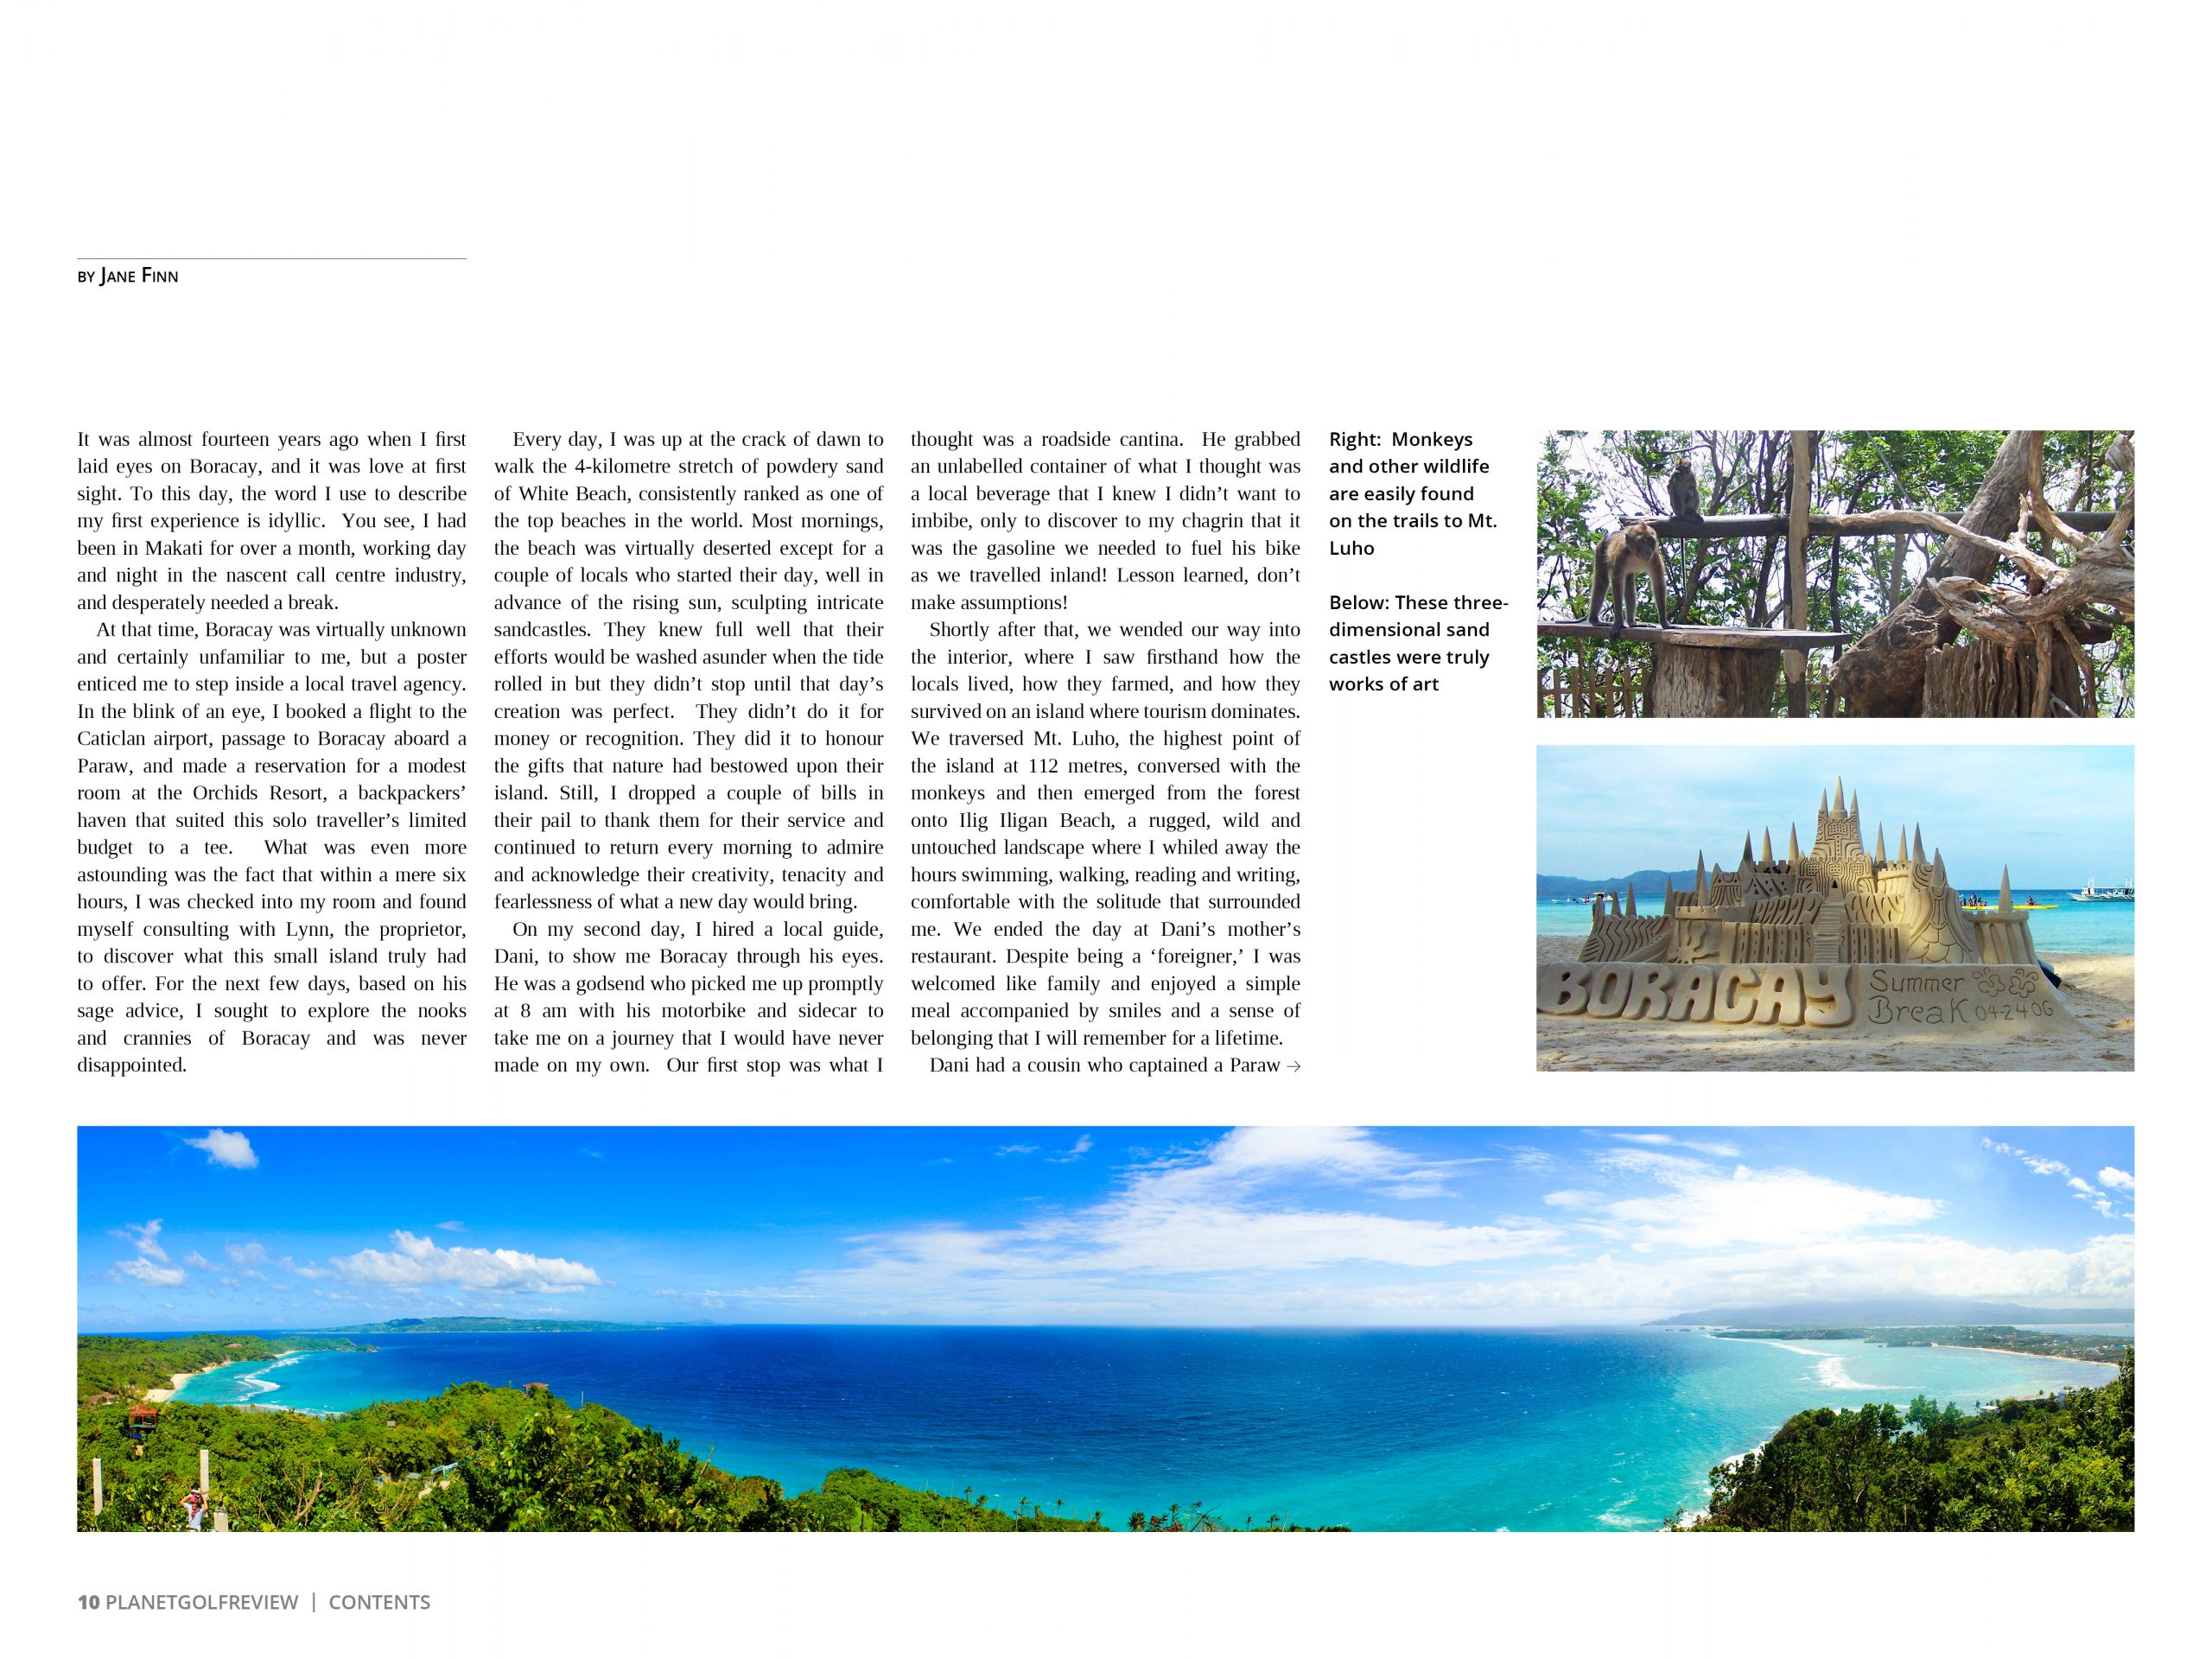 Boracay - Paradise Reclaimed for Planet Golf Review